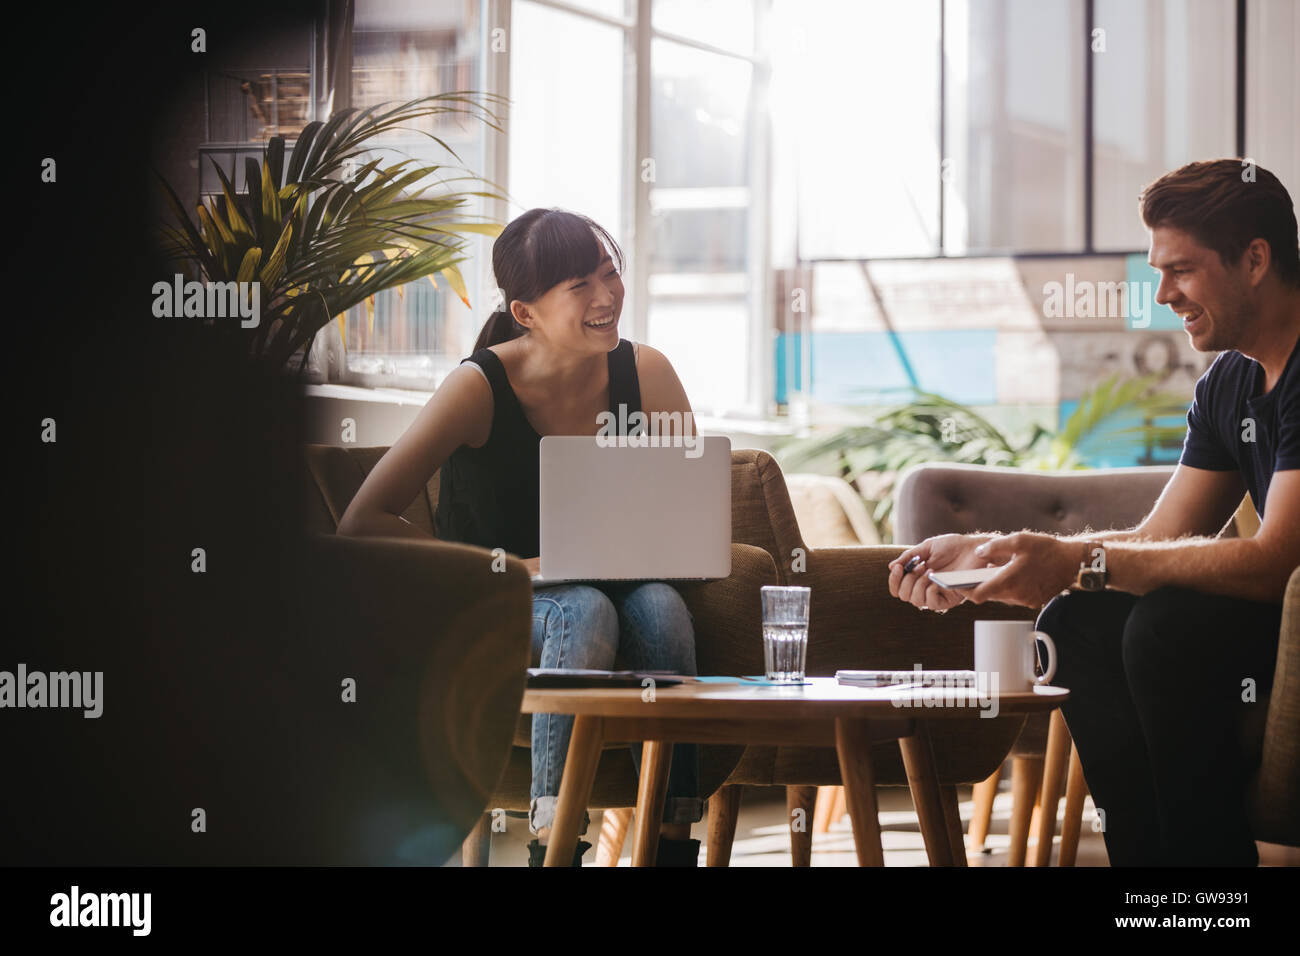 Shot of two business partners sitting in office lobby and smiling. Woman with laptop discussing business ideas with - Stock Image